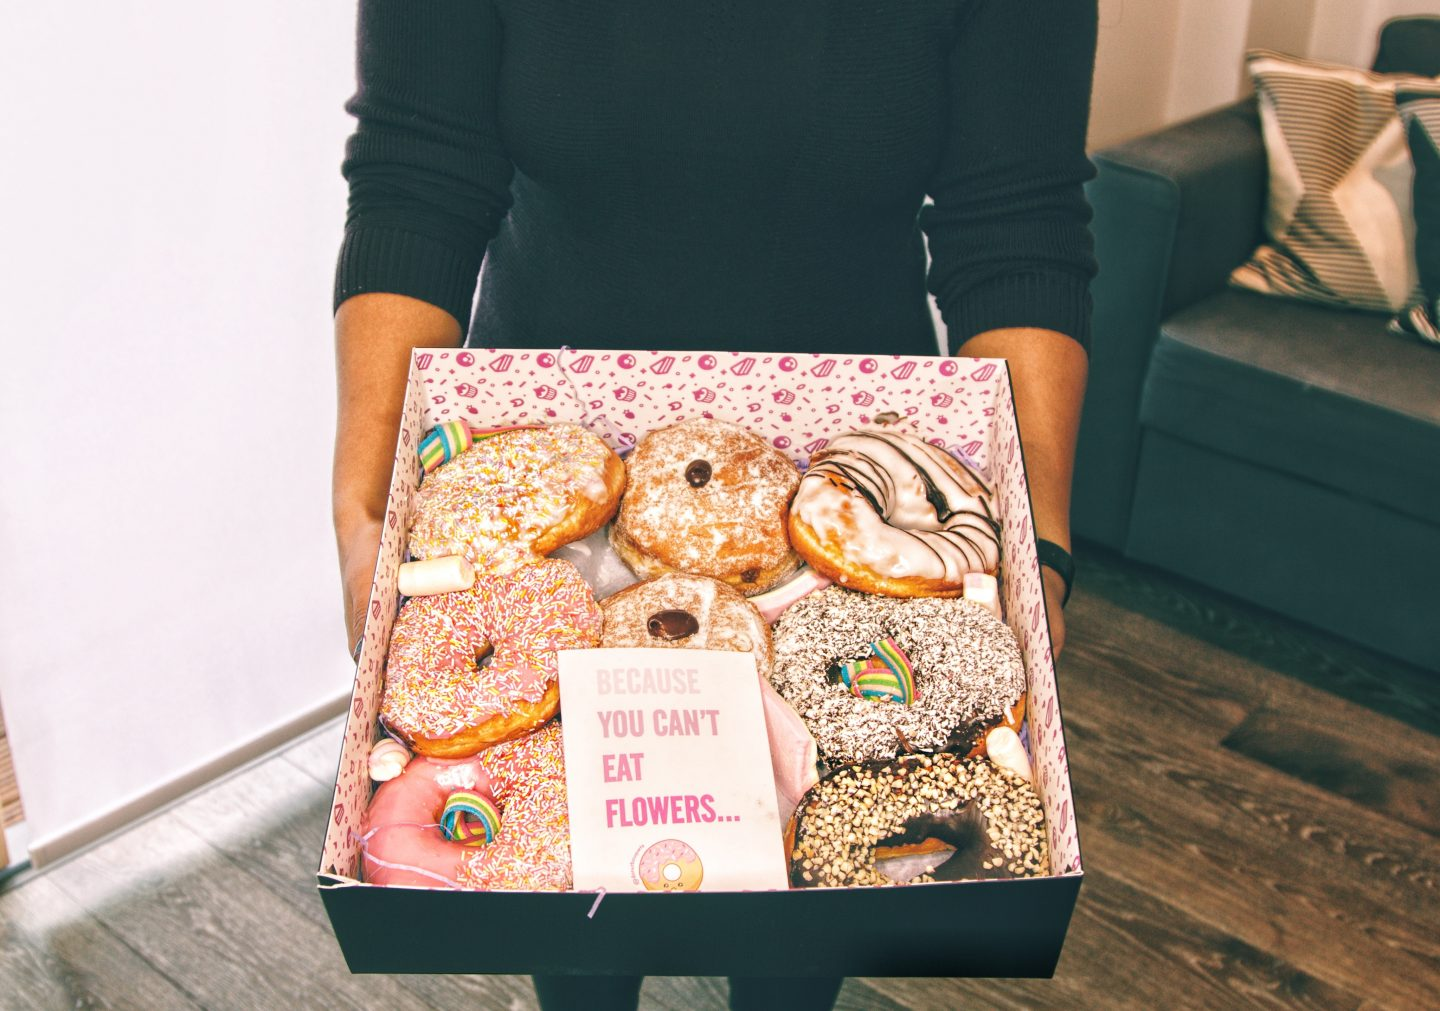 It's all about treating yourself to your own Donut Bouquet Treat Box!